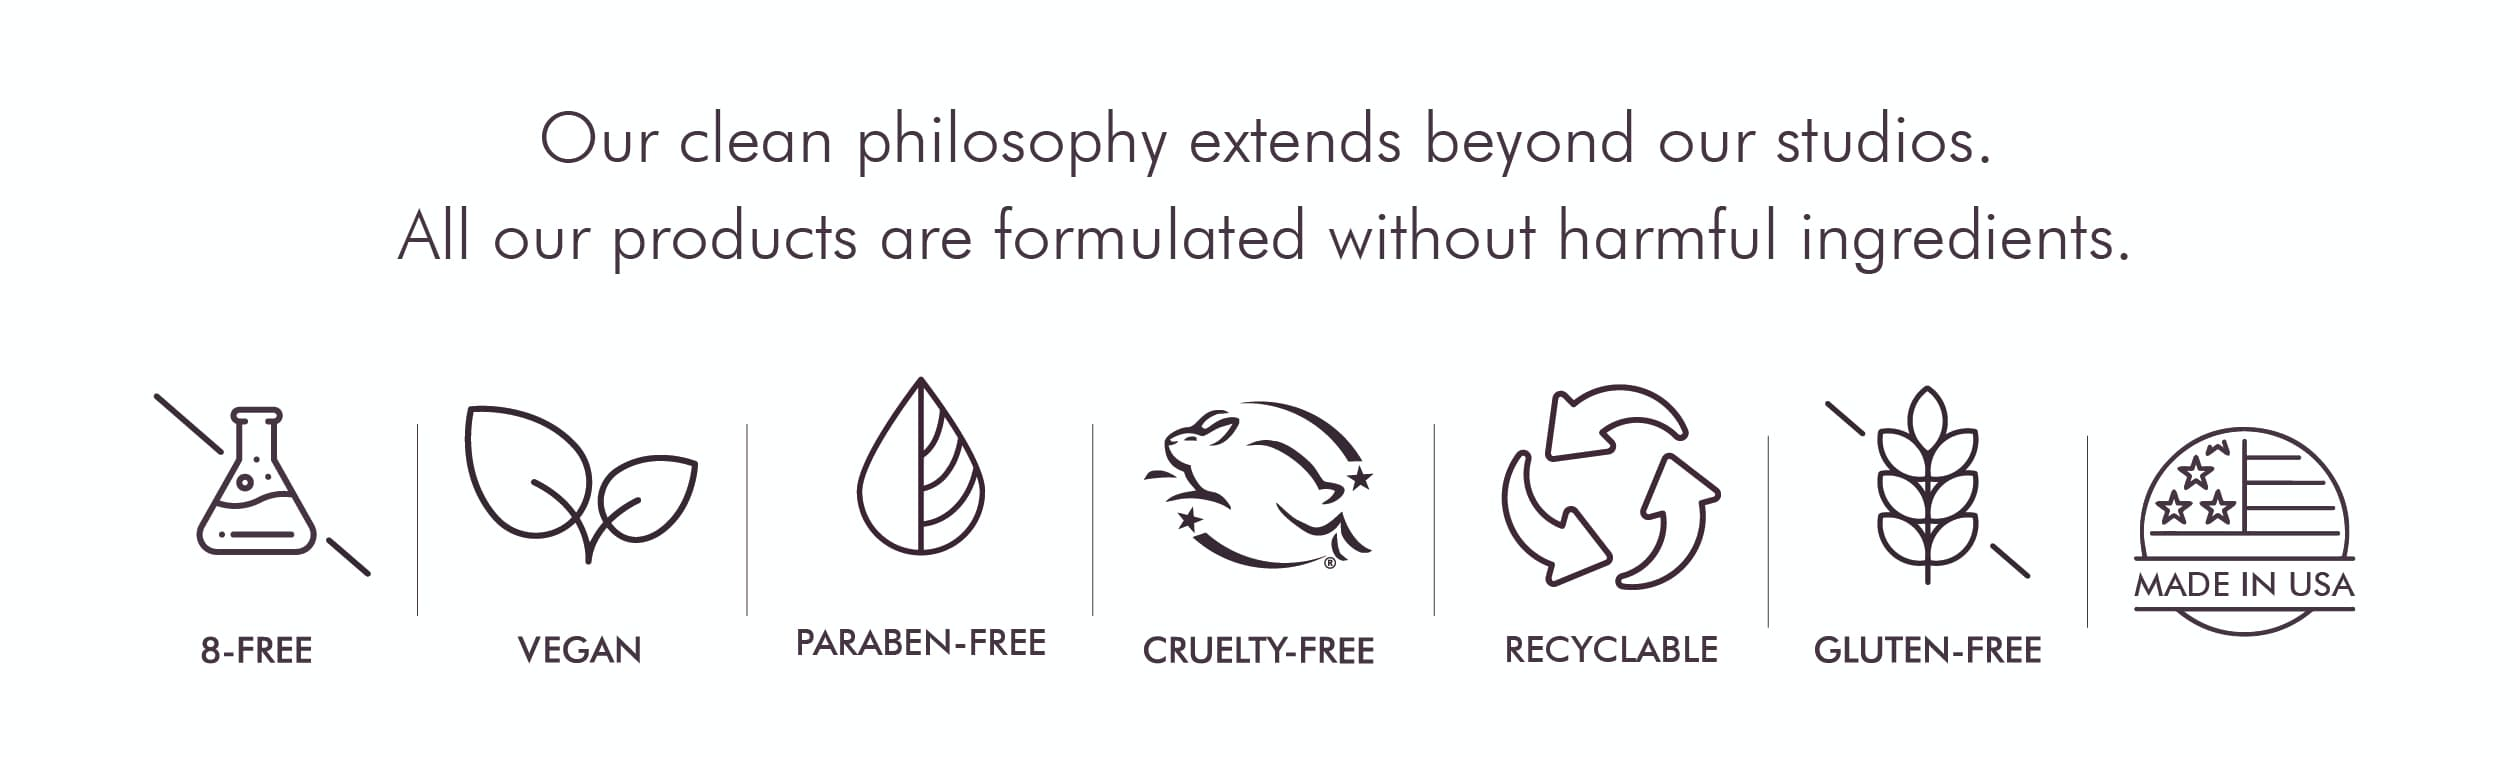 Our clean philosophy extends beyond our studios. All our products are formulated without harmful ingredients.